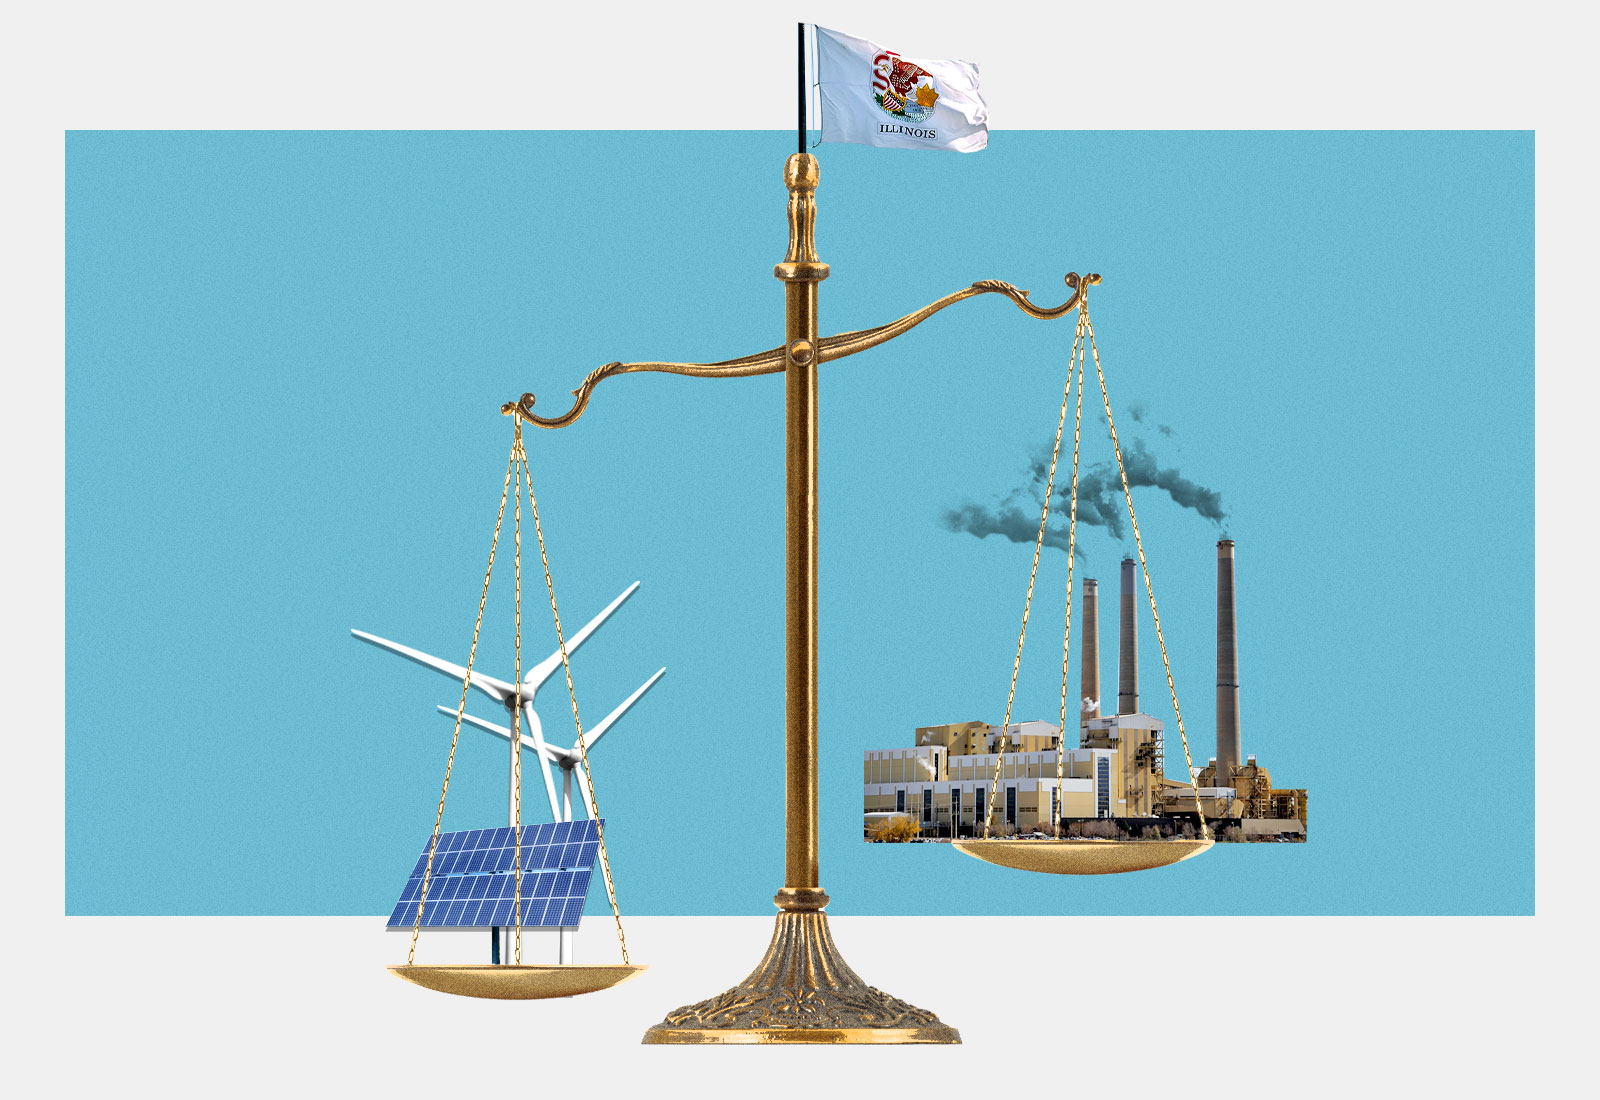 Collage: Scales with the Illinois flag holding wind turbines and a solar panel on one side and a coal plant on the other